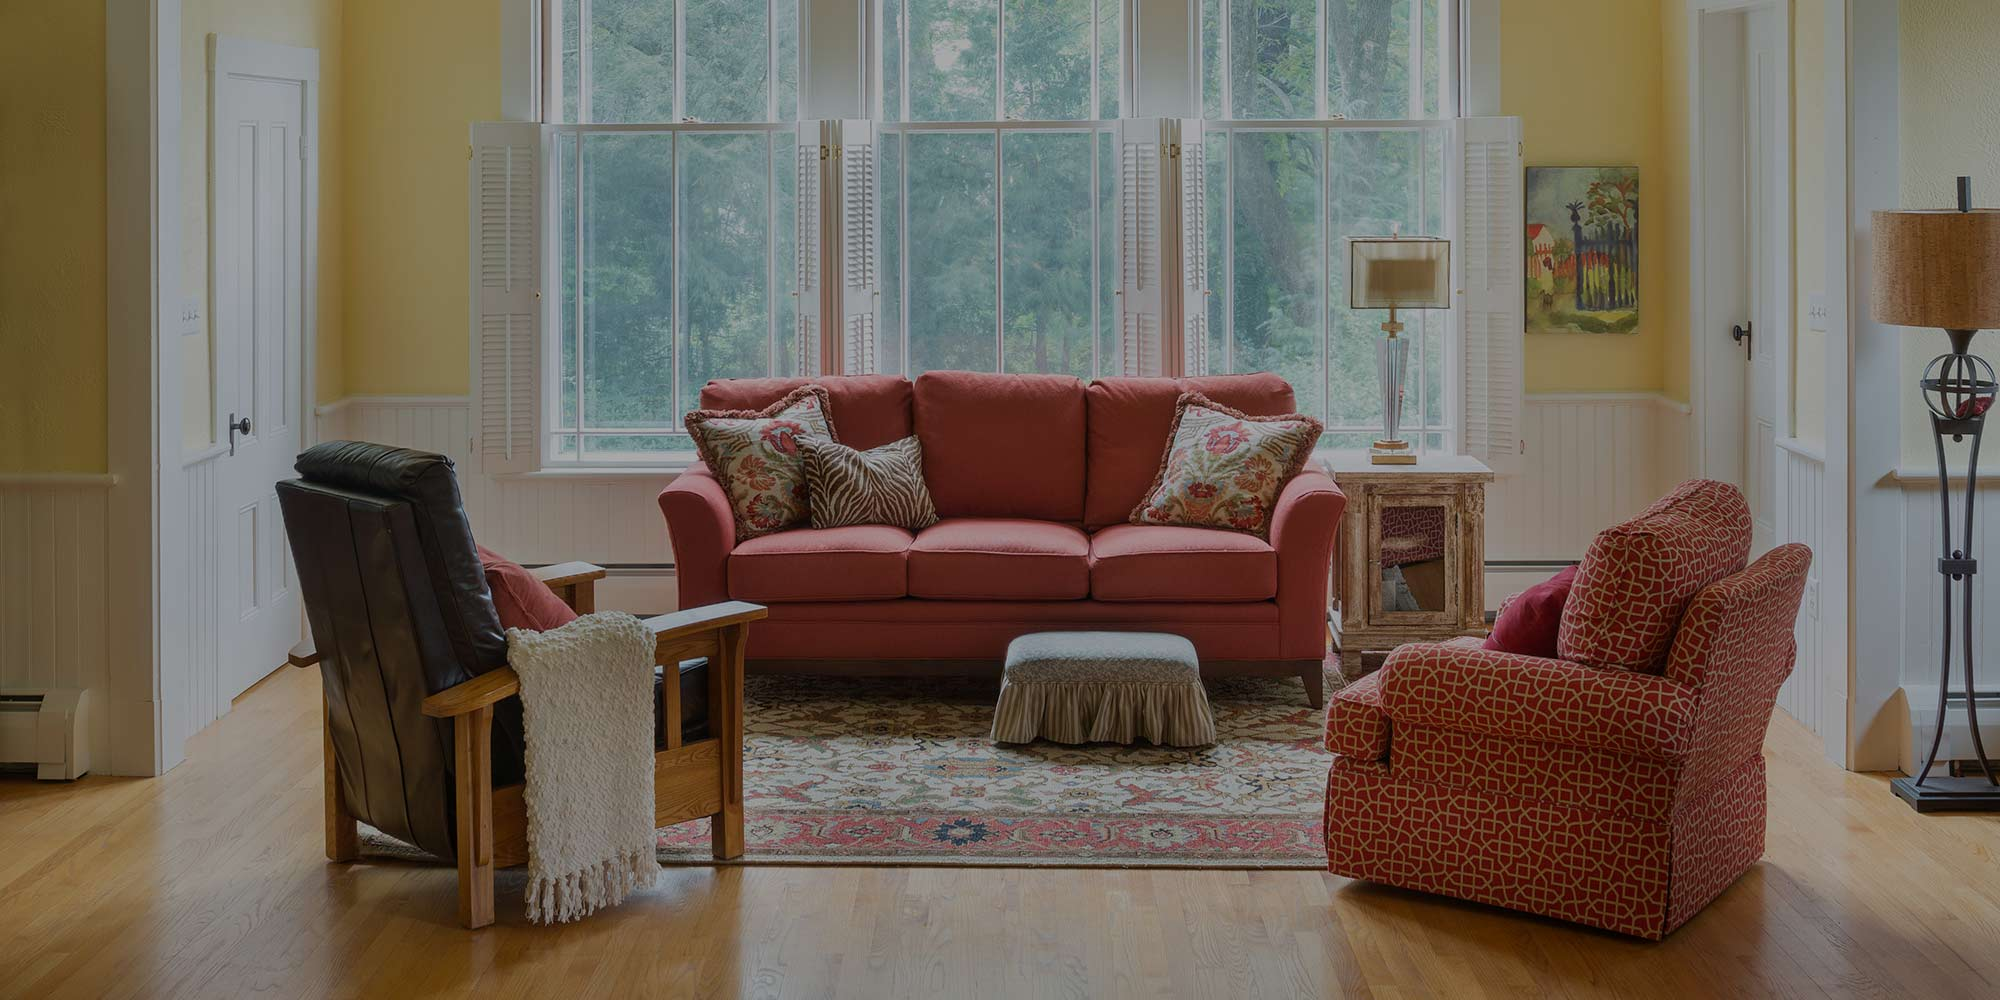 Family room remodel by Red House